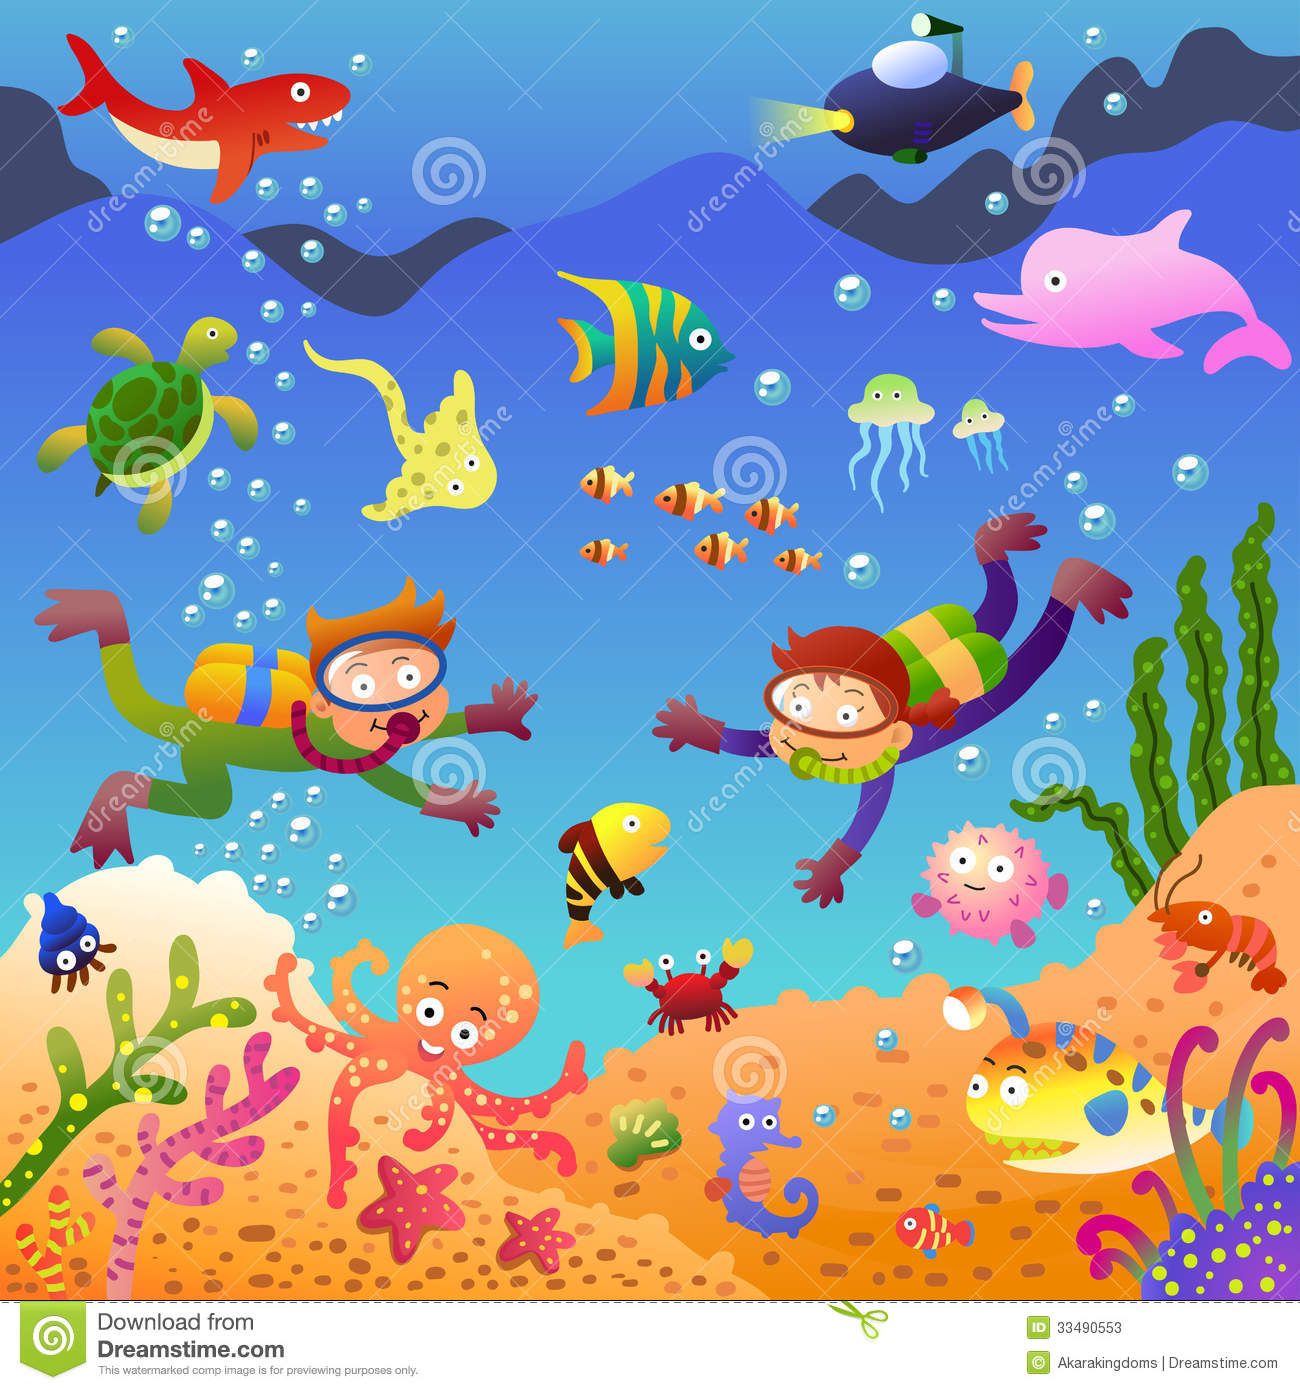 Under ocean clipart image royalty free download 9+ Under The Sea Clipart   ClipartLook image royalty free download